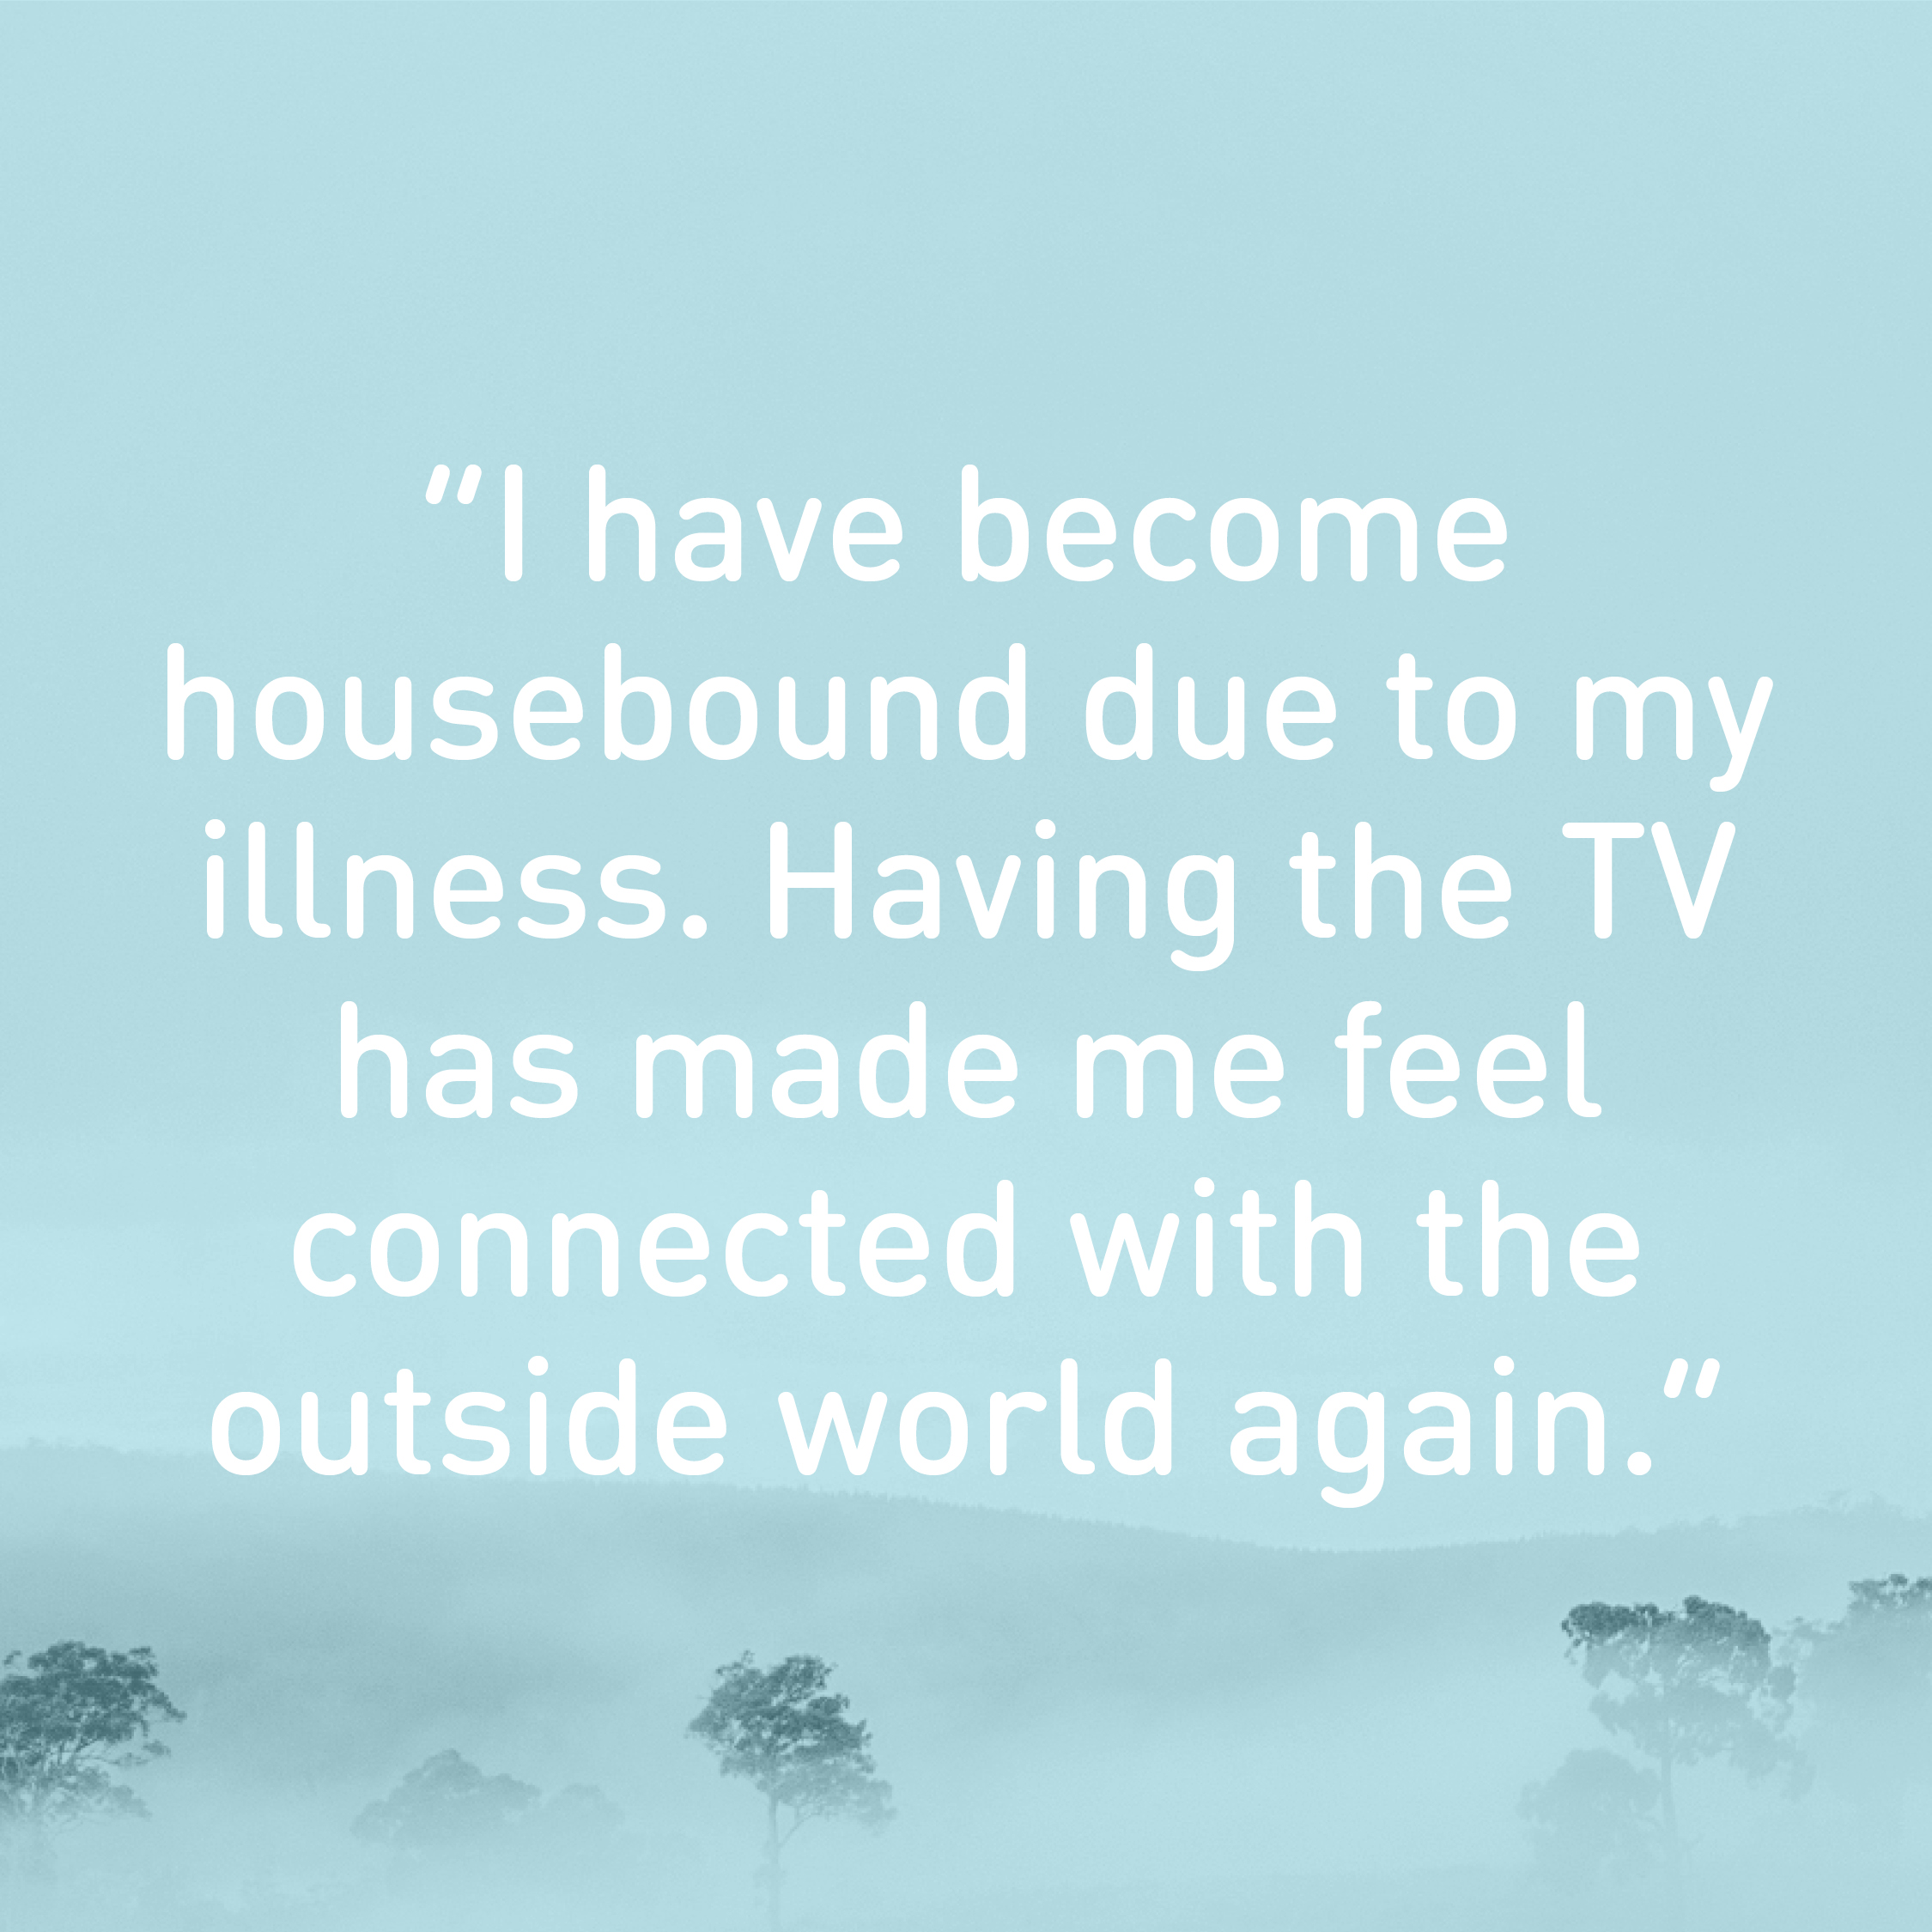 I have become housebound due to my illness. Having the TV has made me feel connected with the outside world again.